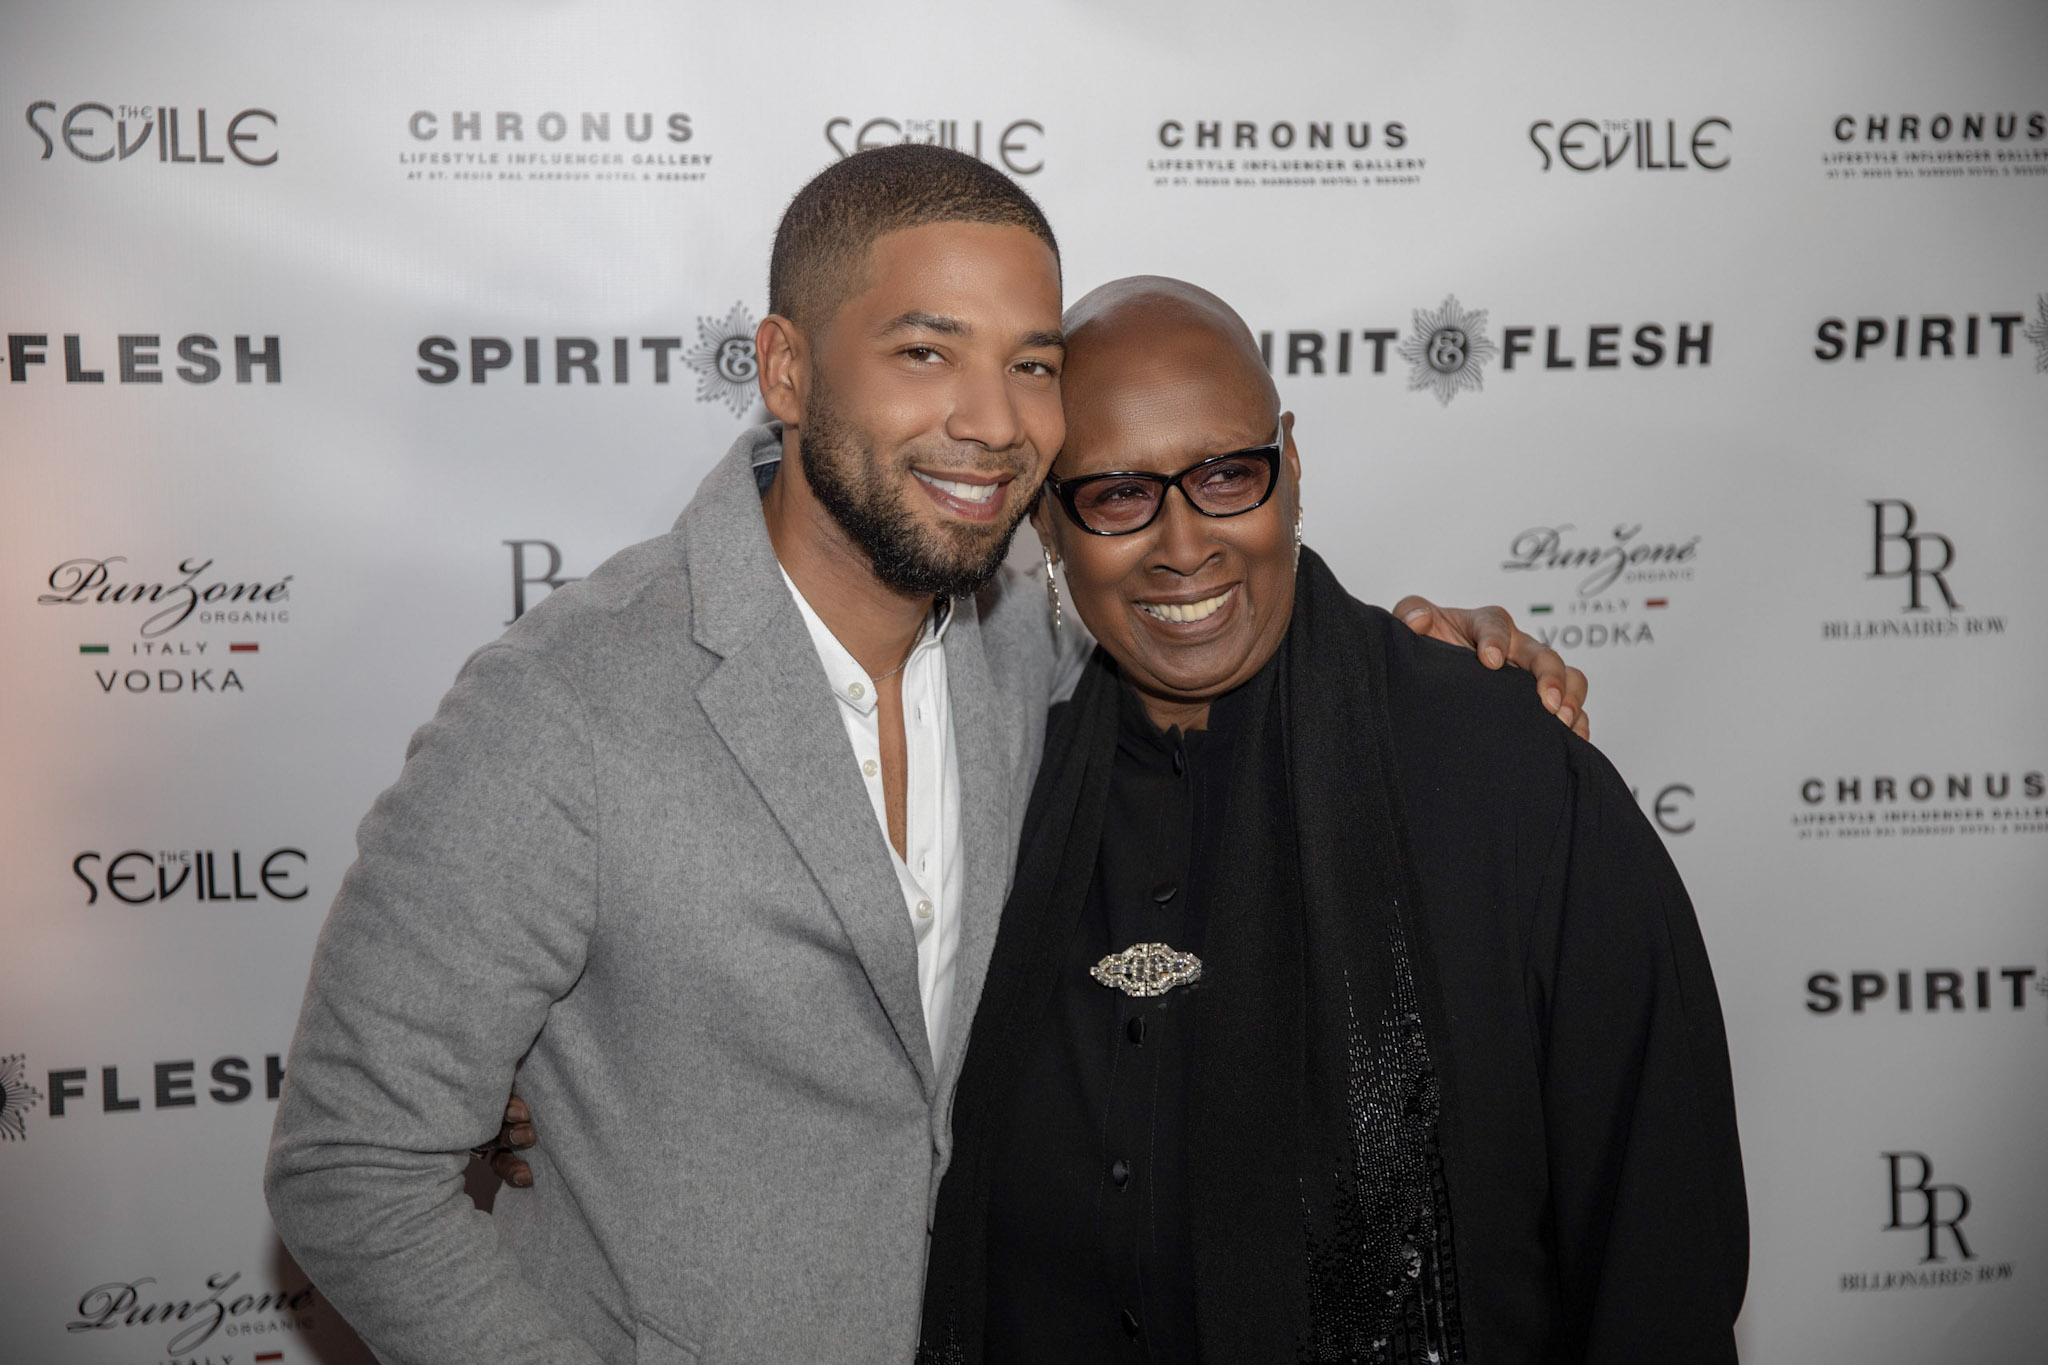 Spirit & Flesh Magazine cover event Jussie Smollett & Judith Jamison by Kenneth de la Torre 001